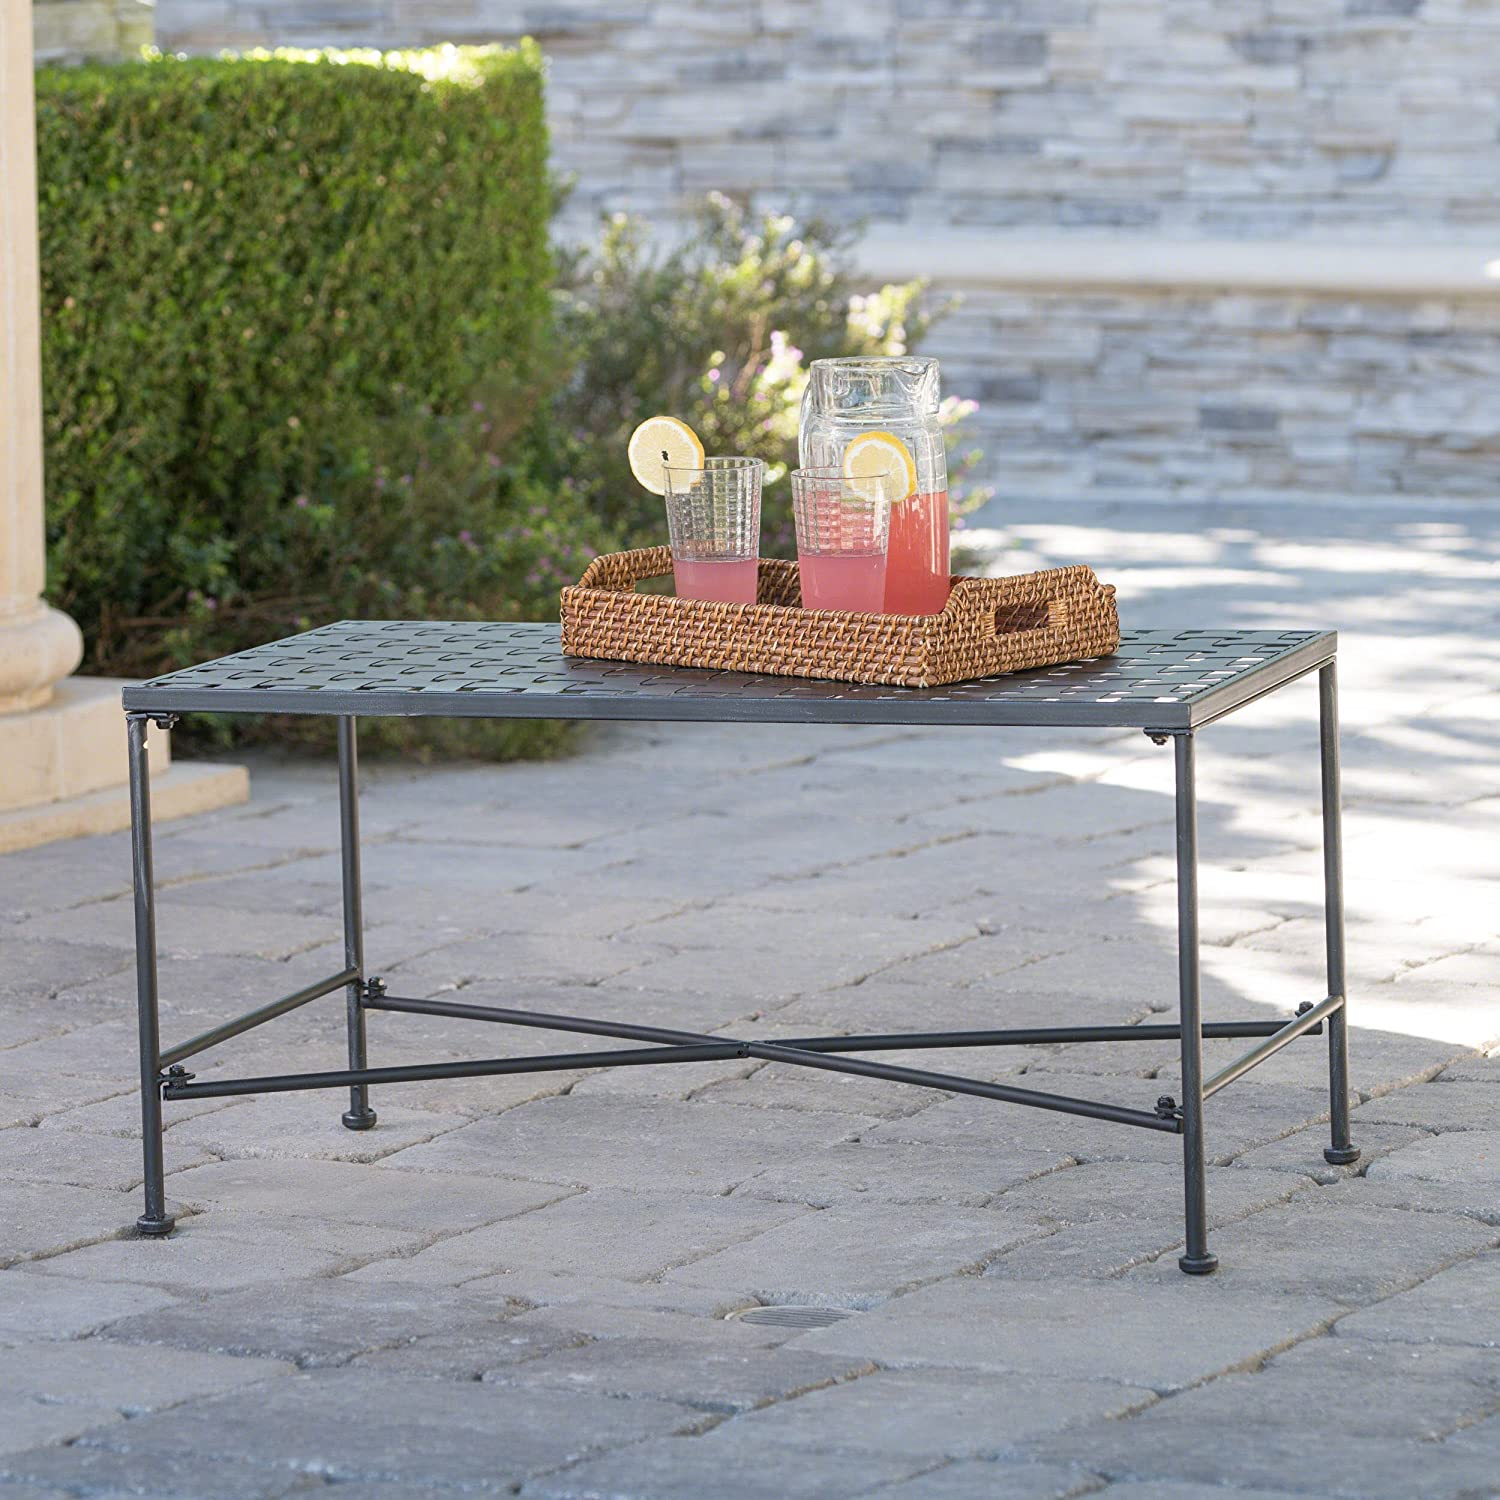 Amazon belleville fts80721 ceramic tile top outdoor patio kent outdoor black iron coffee table dailygadgetfo Image collections